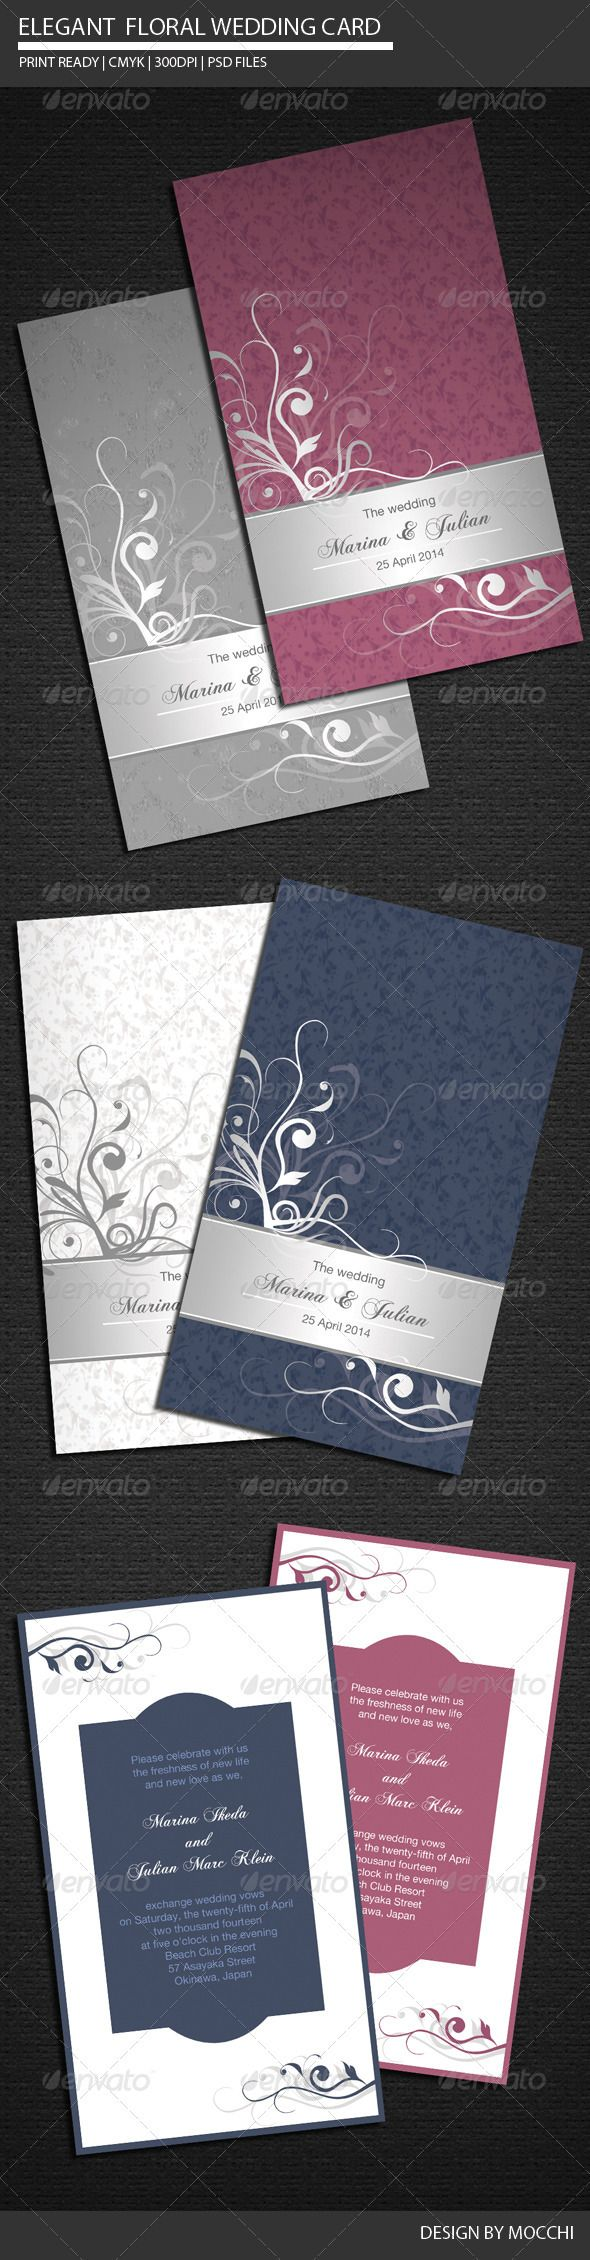 templates for wedding card design%0A Elegant Floral Wedding Card